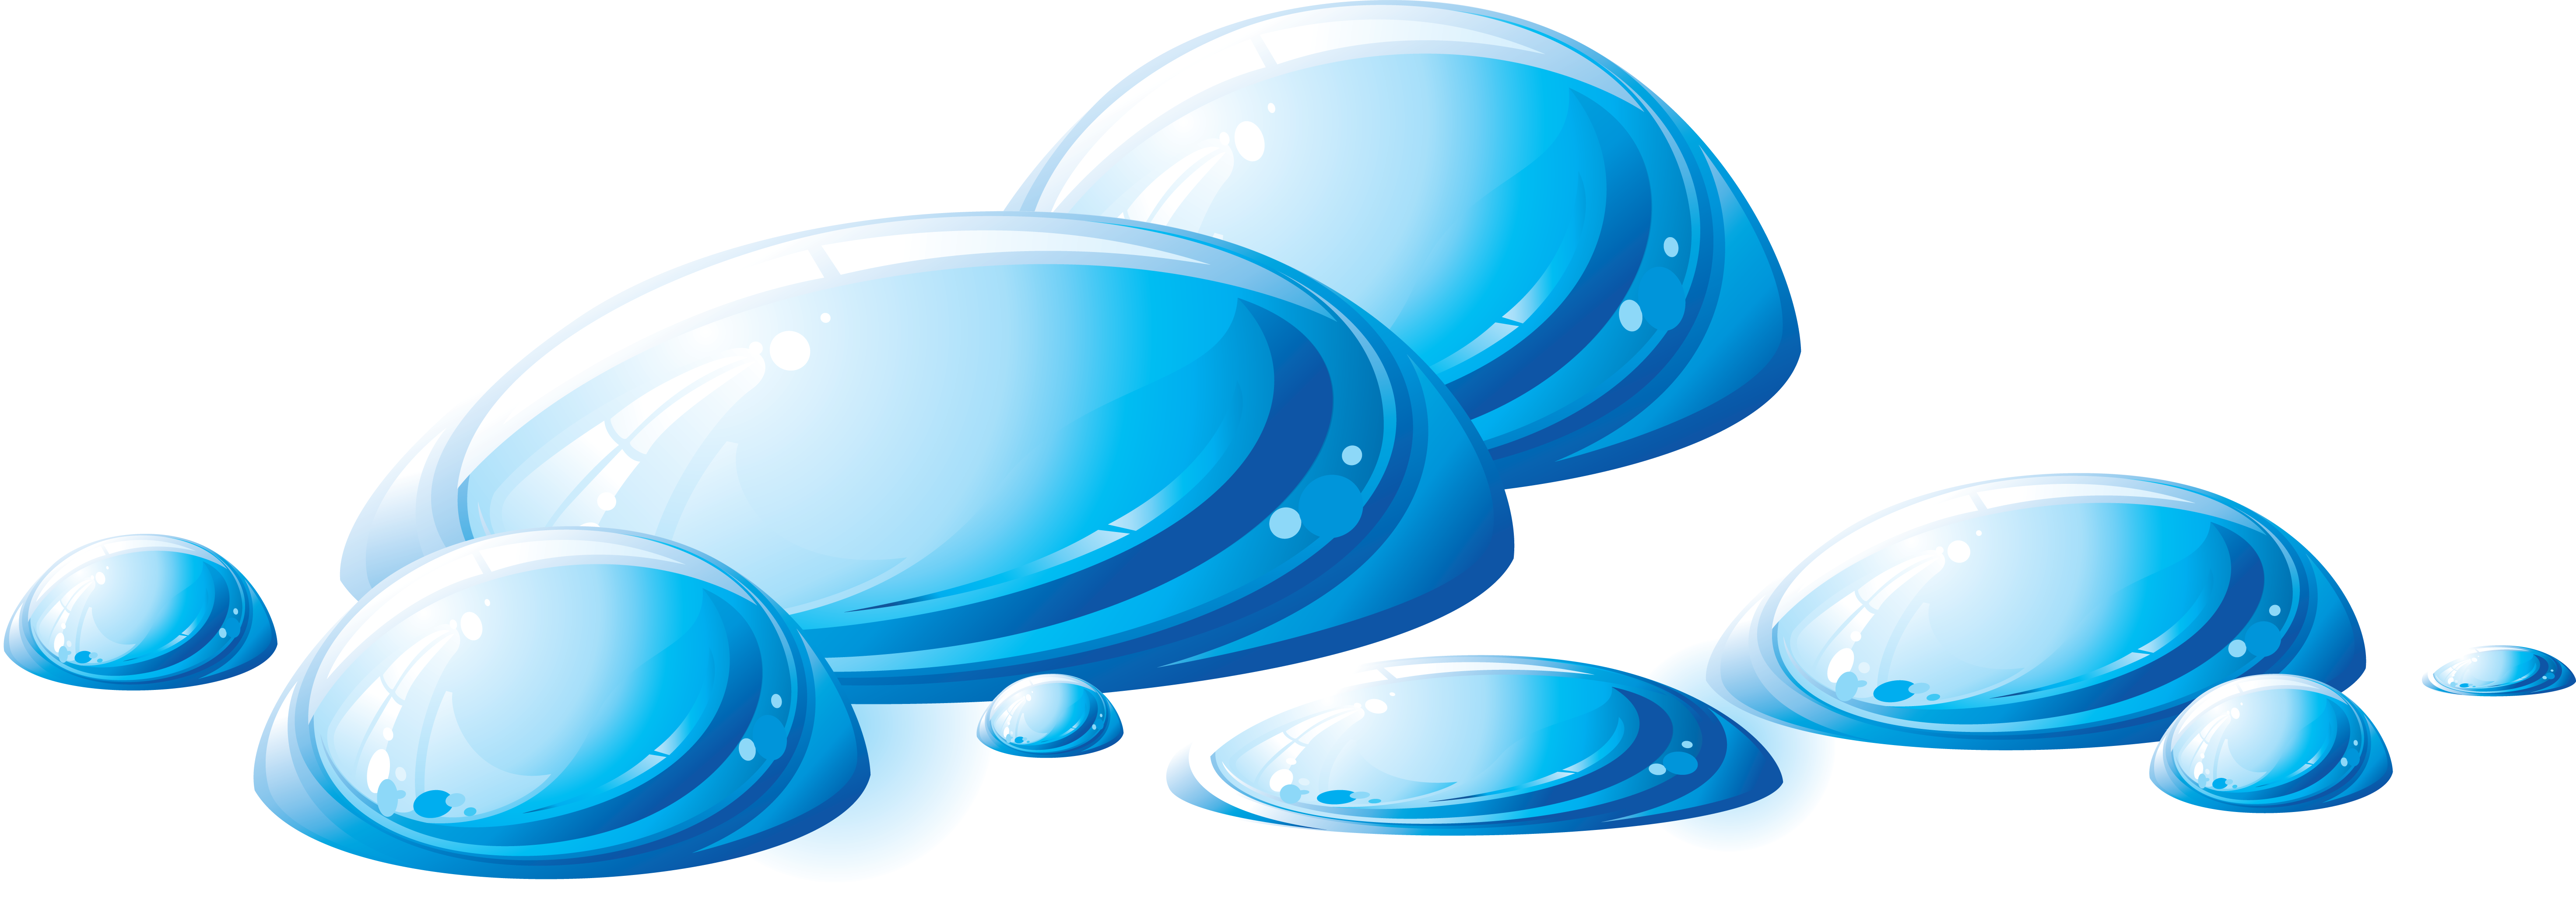 5886x2112 Blue Water Clipart Water Flow